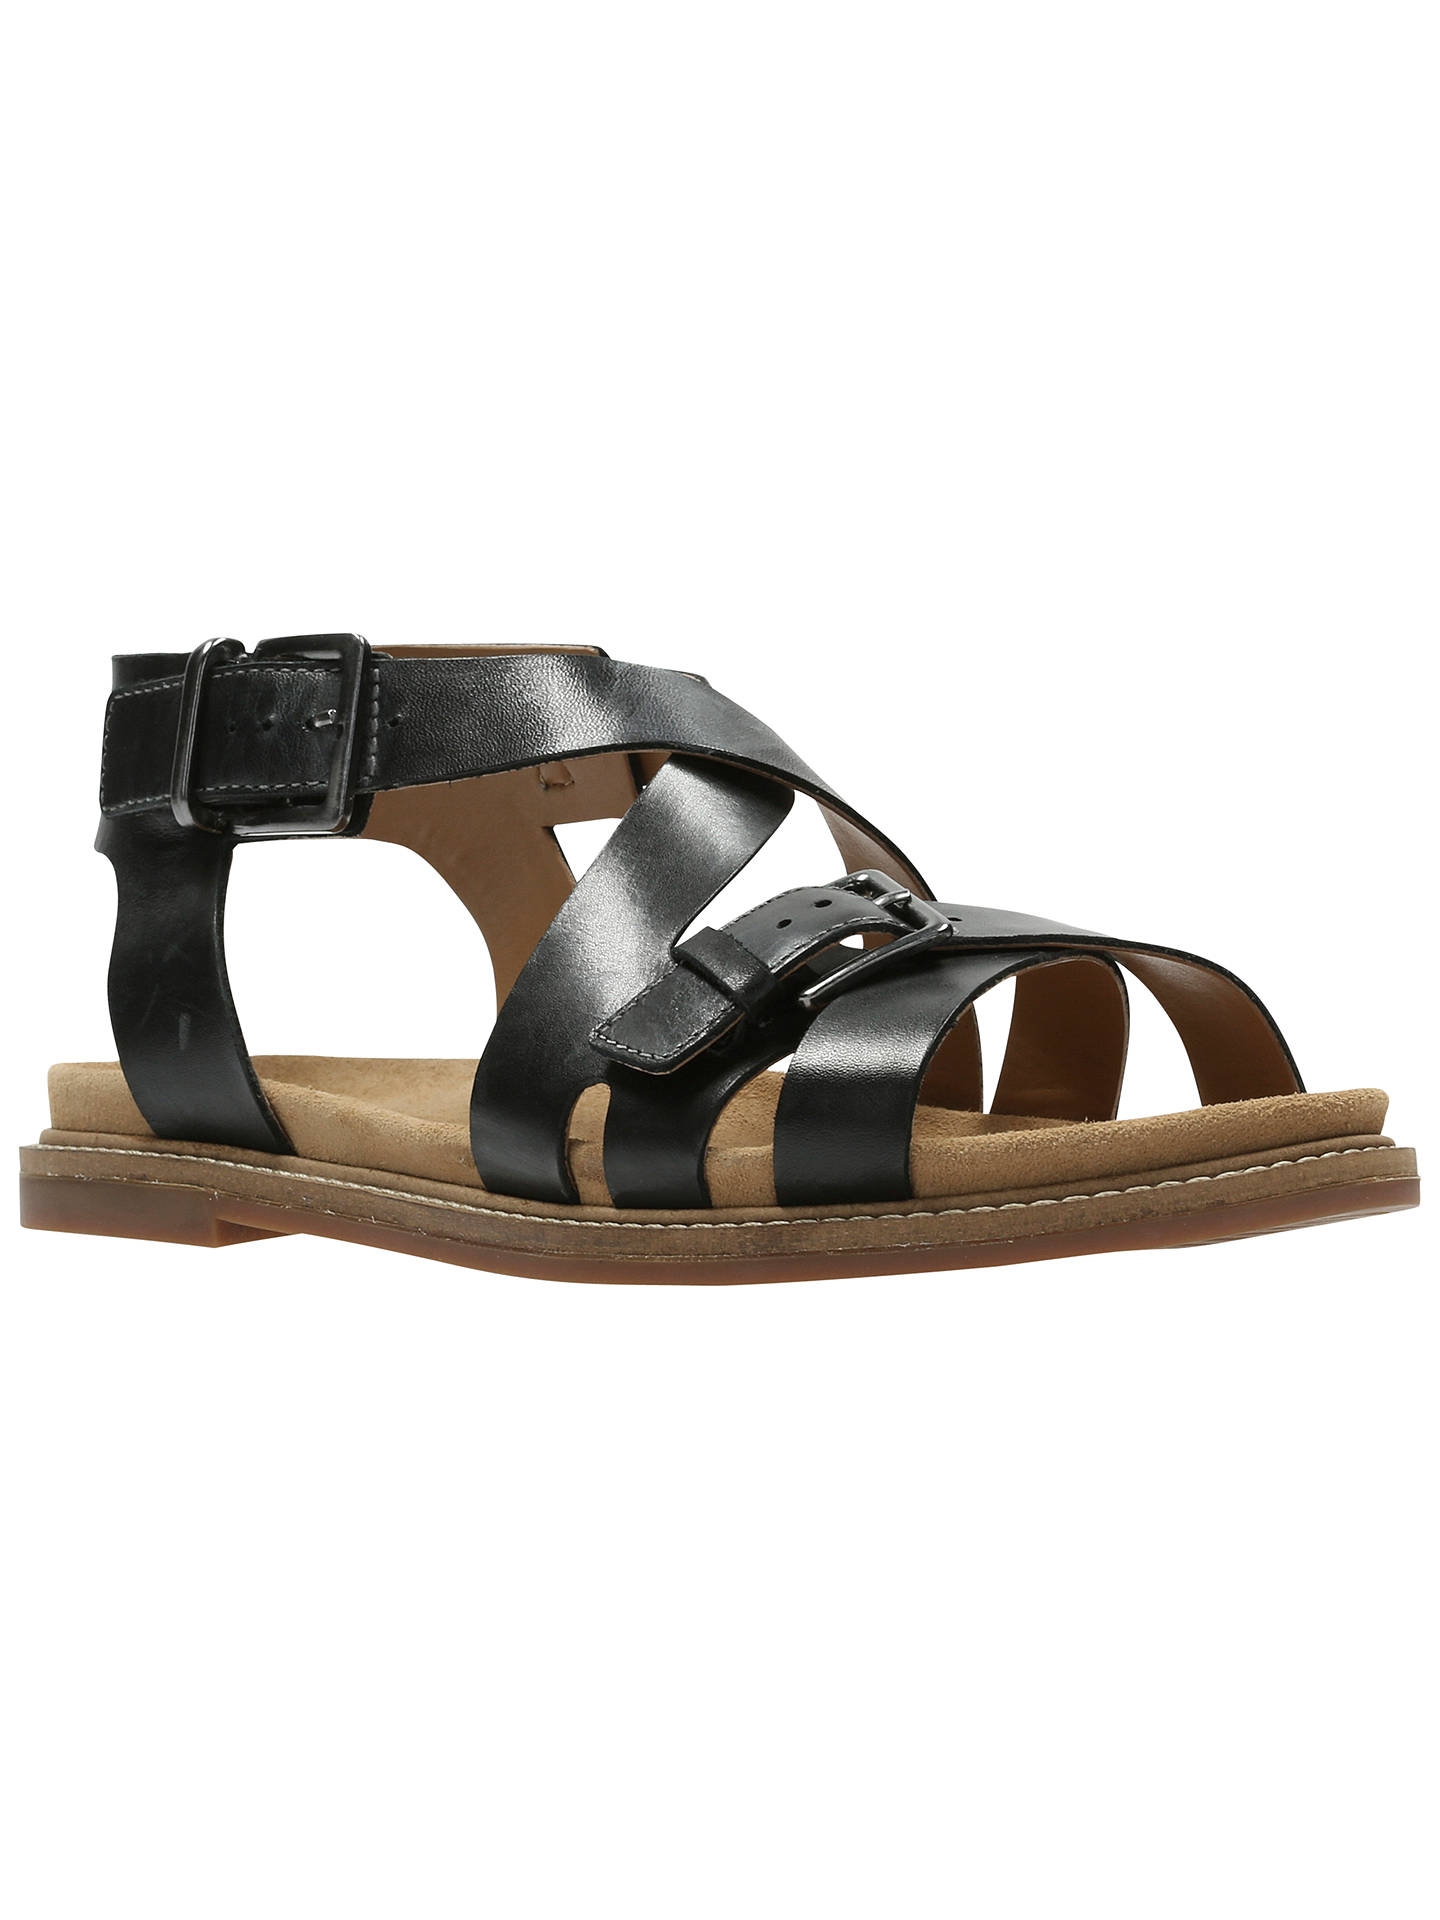 916879e78f1 Buy Clarks Corsio Bambi Cross Strap Sandals